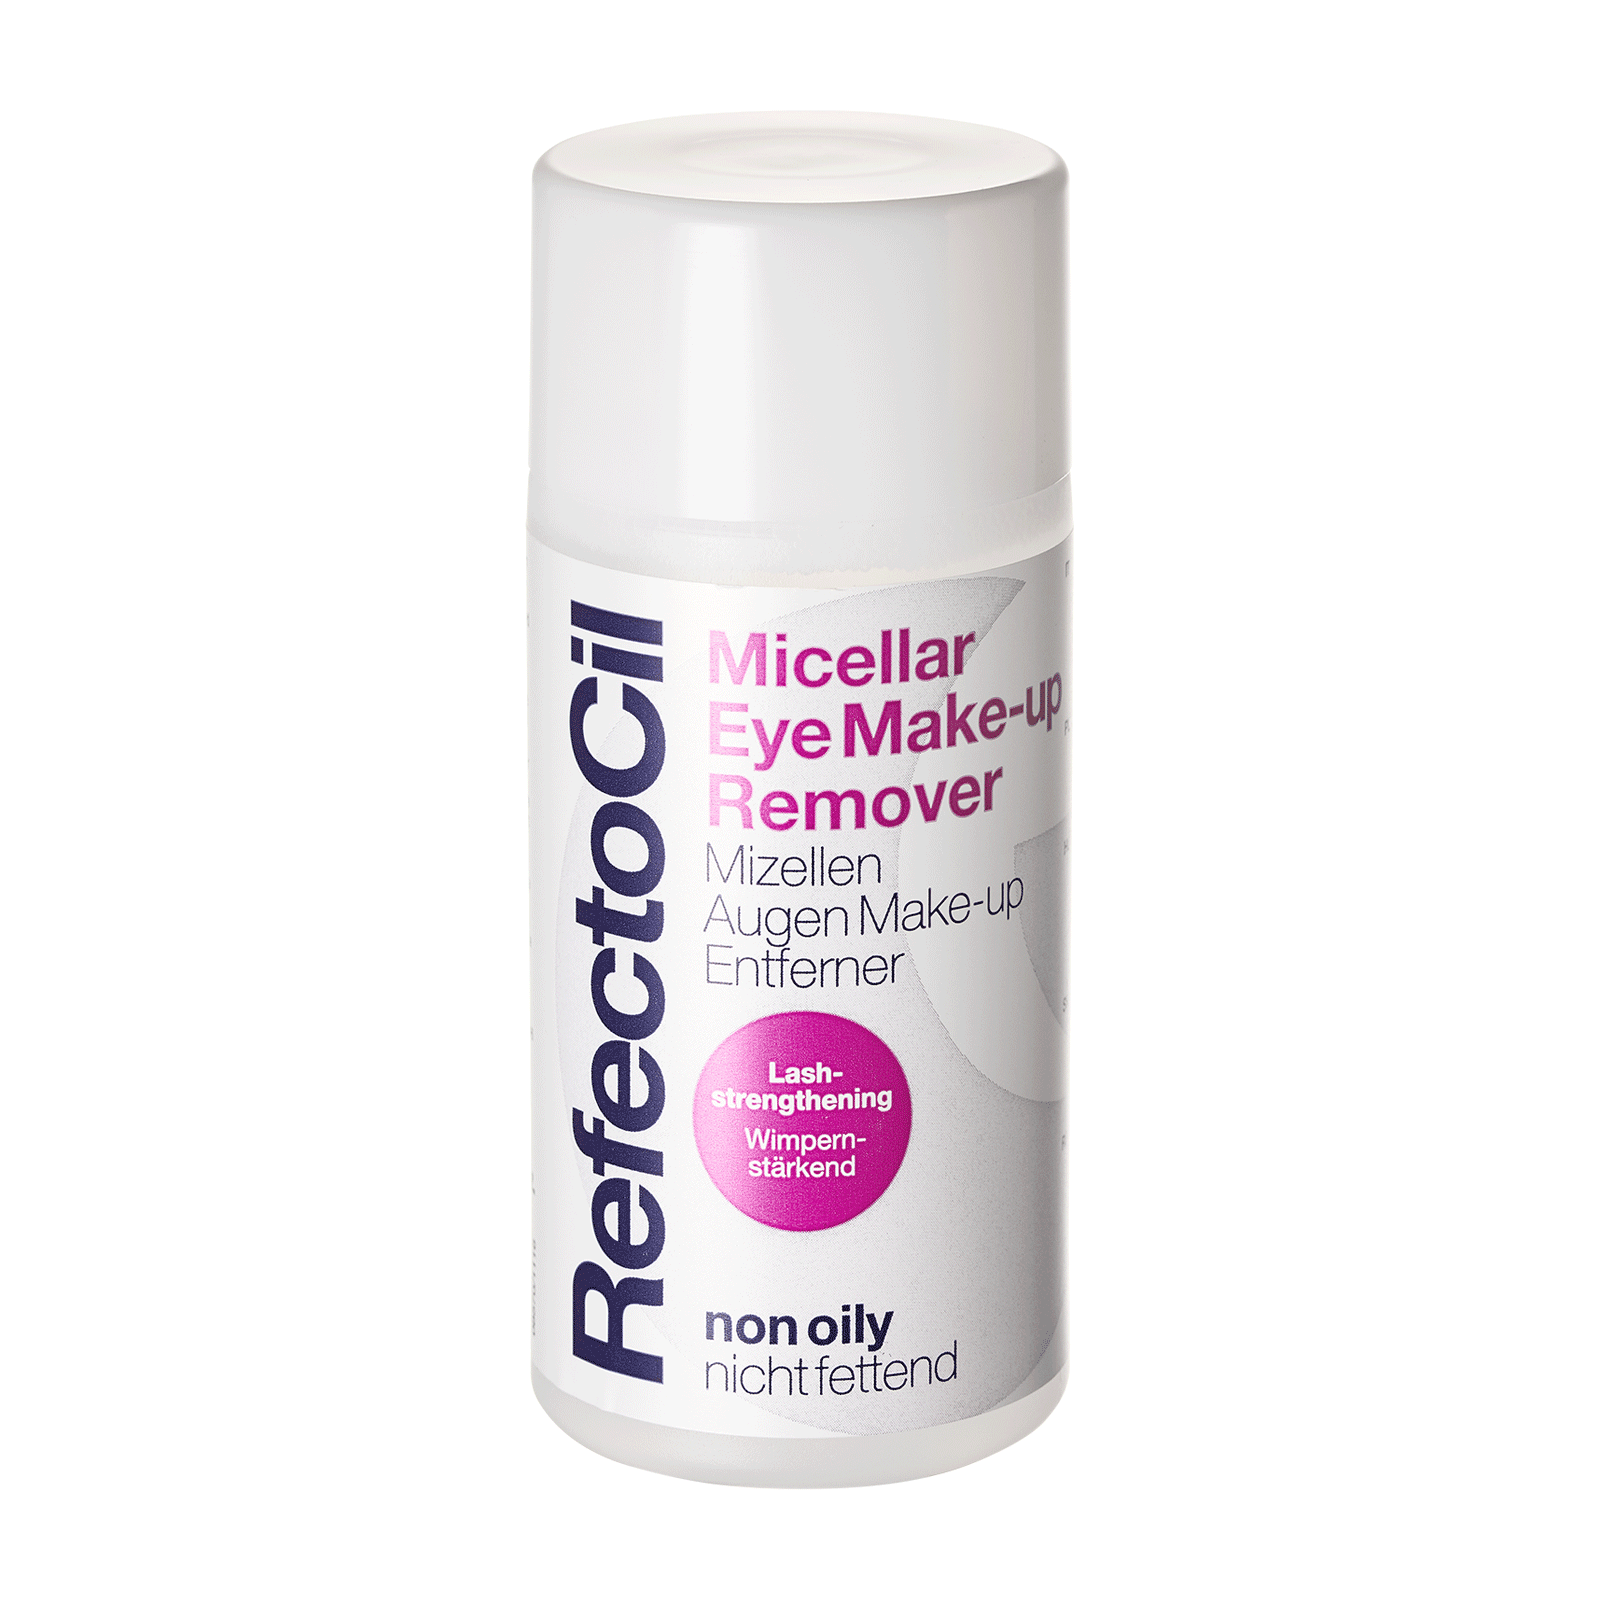 RefectoCil Micellar Eye Make-Up Remover non-oily